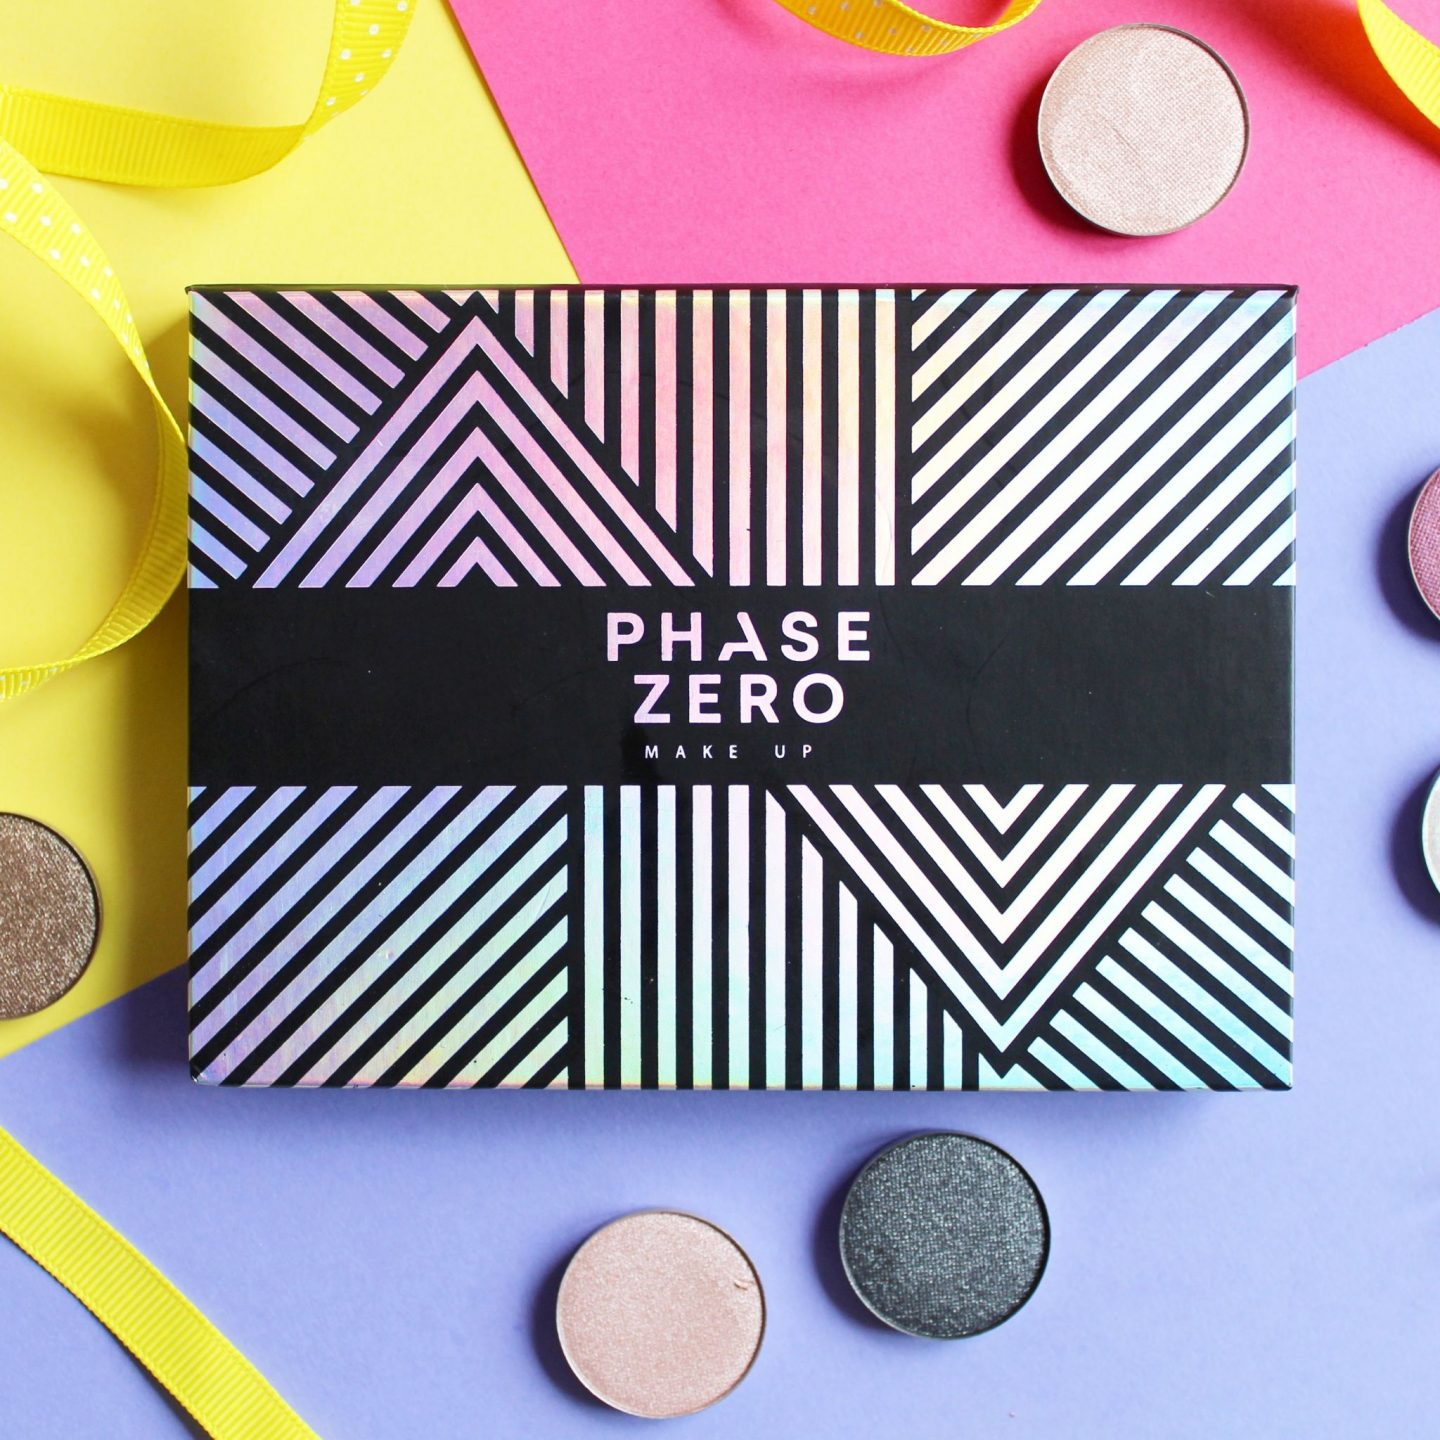 Phase Zero Makeup X Love Me Beauty | Magnetic Palette & Single Eyeshadows (+ £5 Off Discount Code)